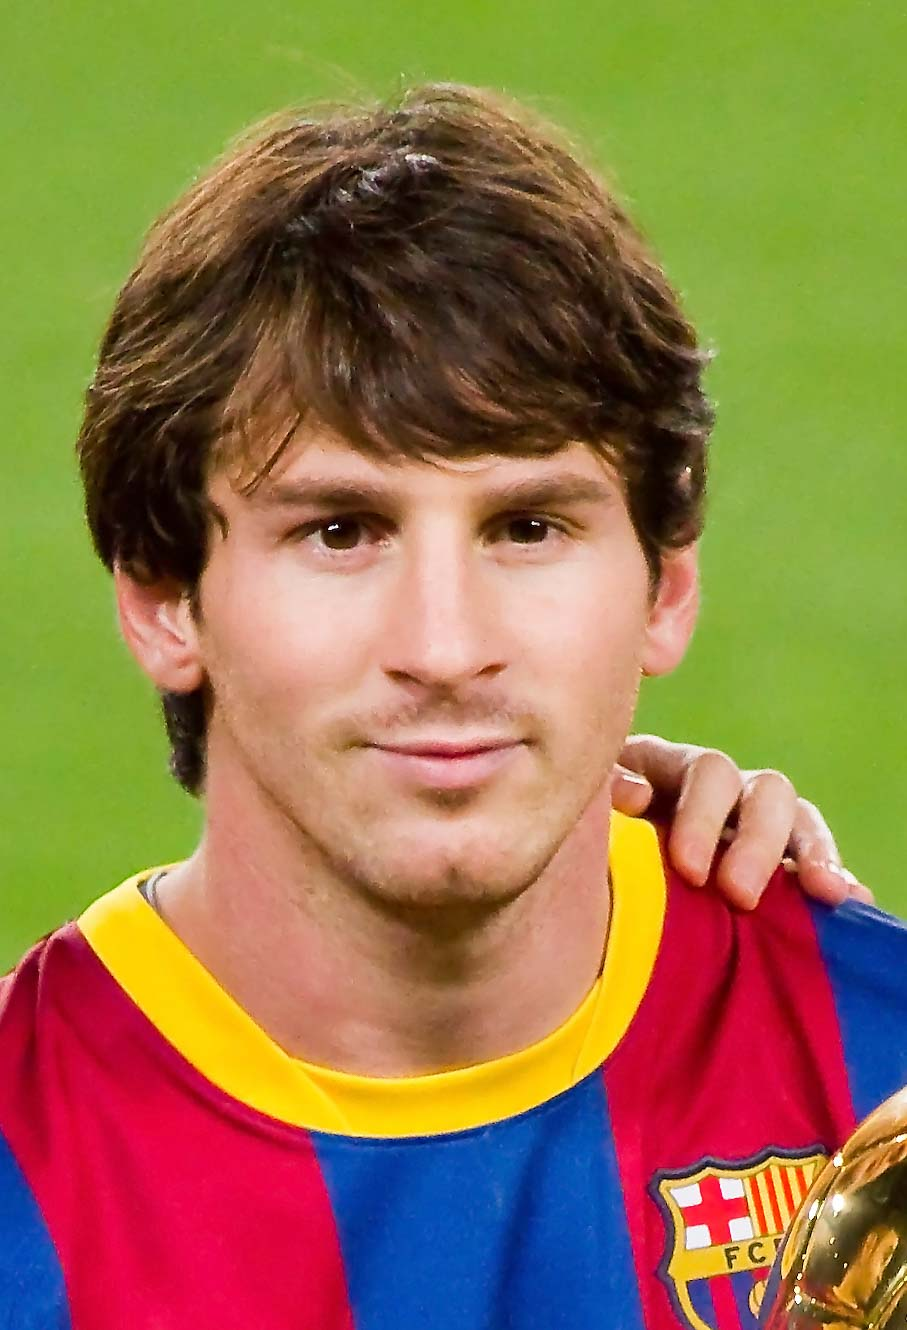 Lionel Messi S Top 10 Most Iconic Hairstyles Haircut Inspiration